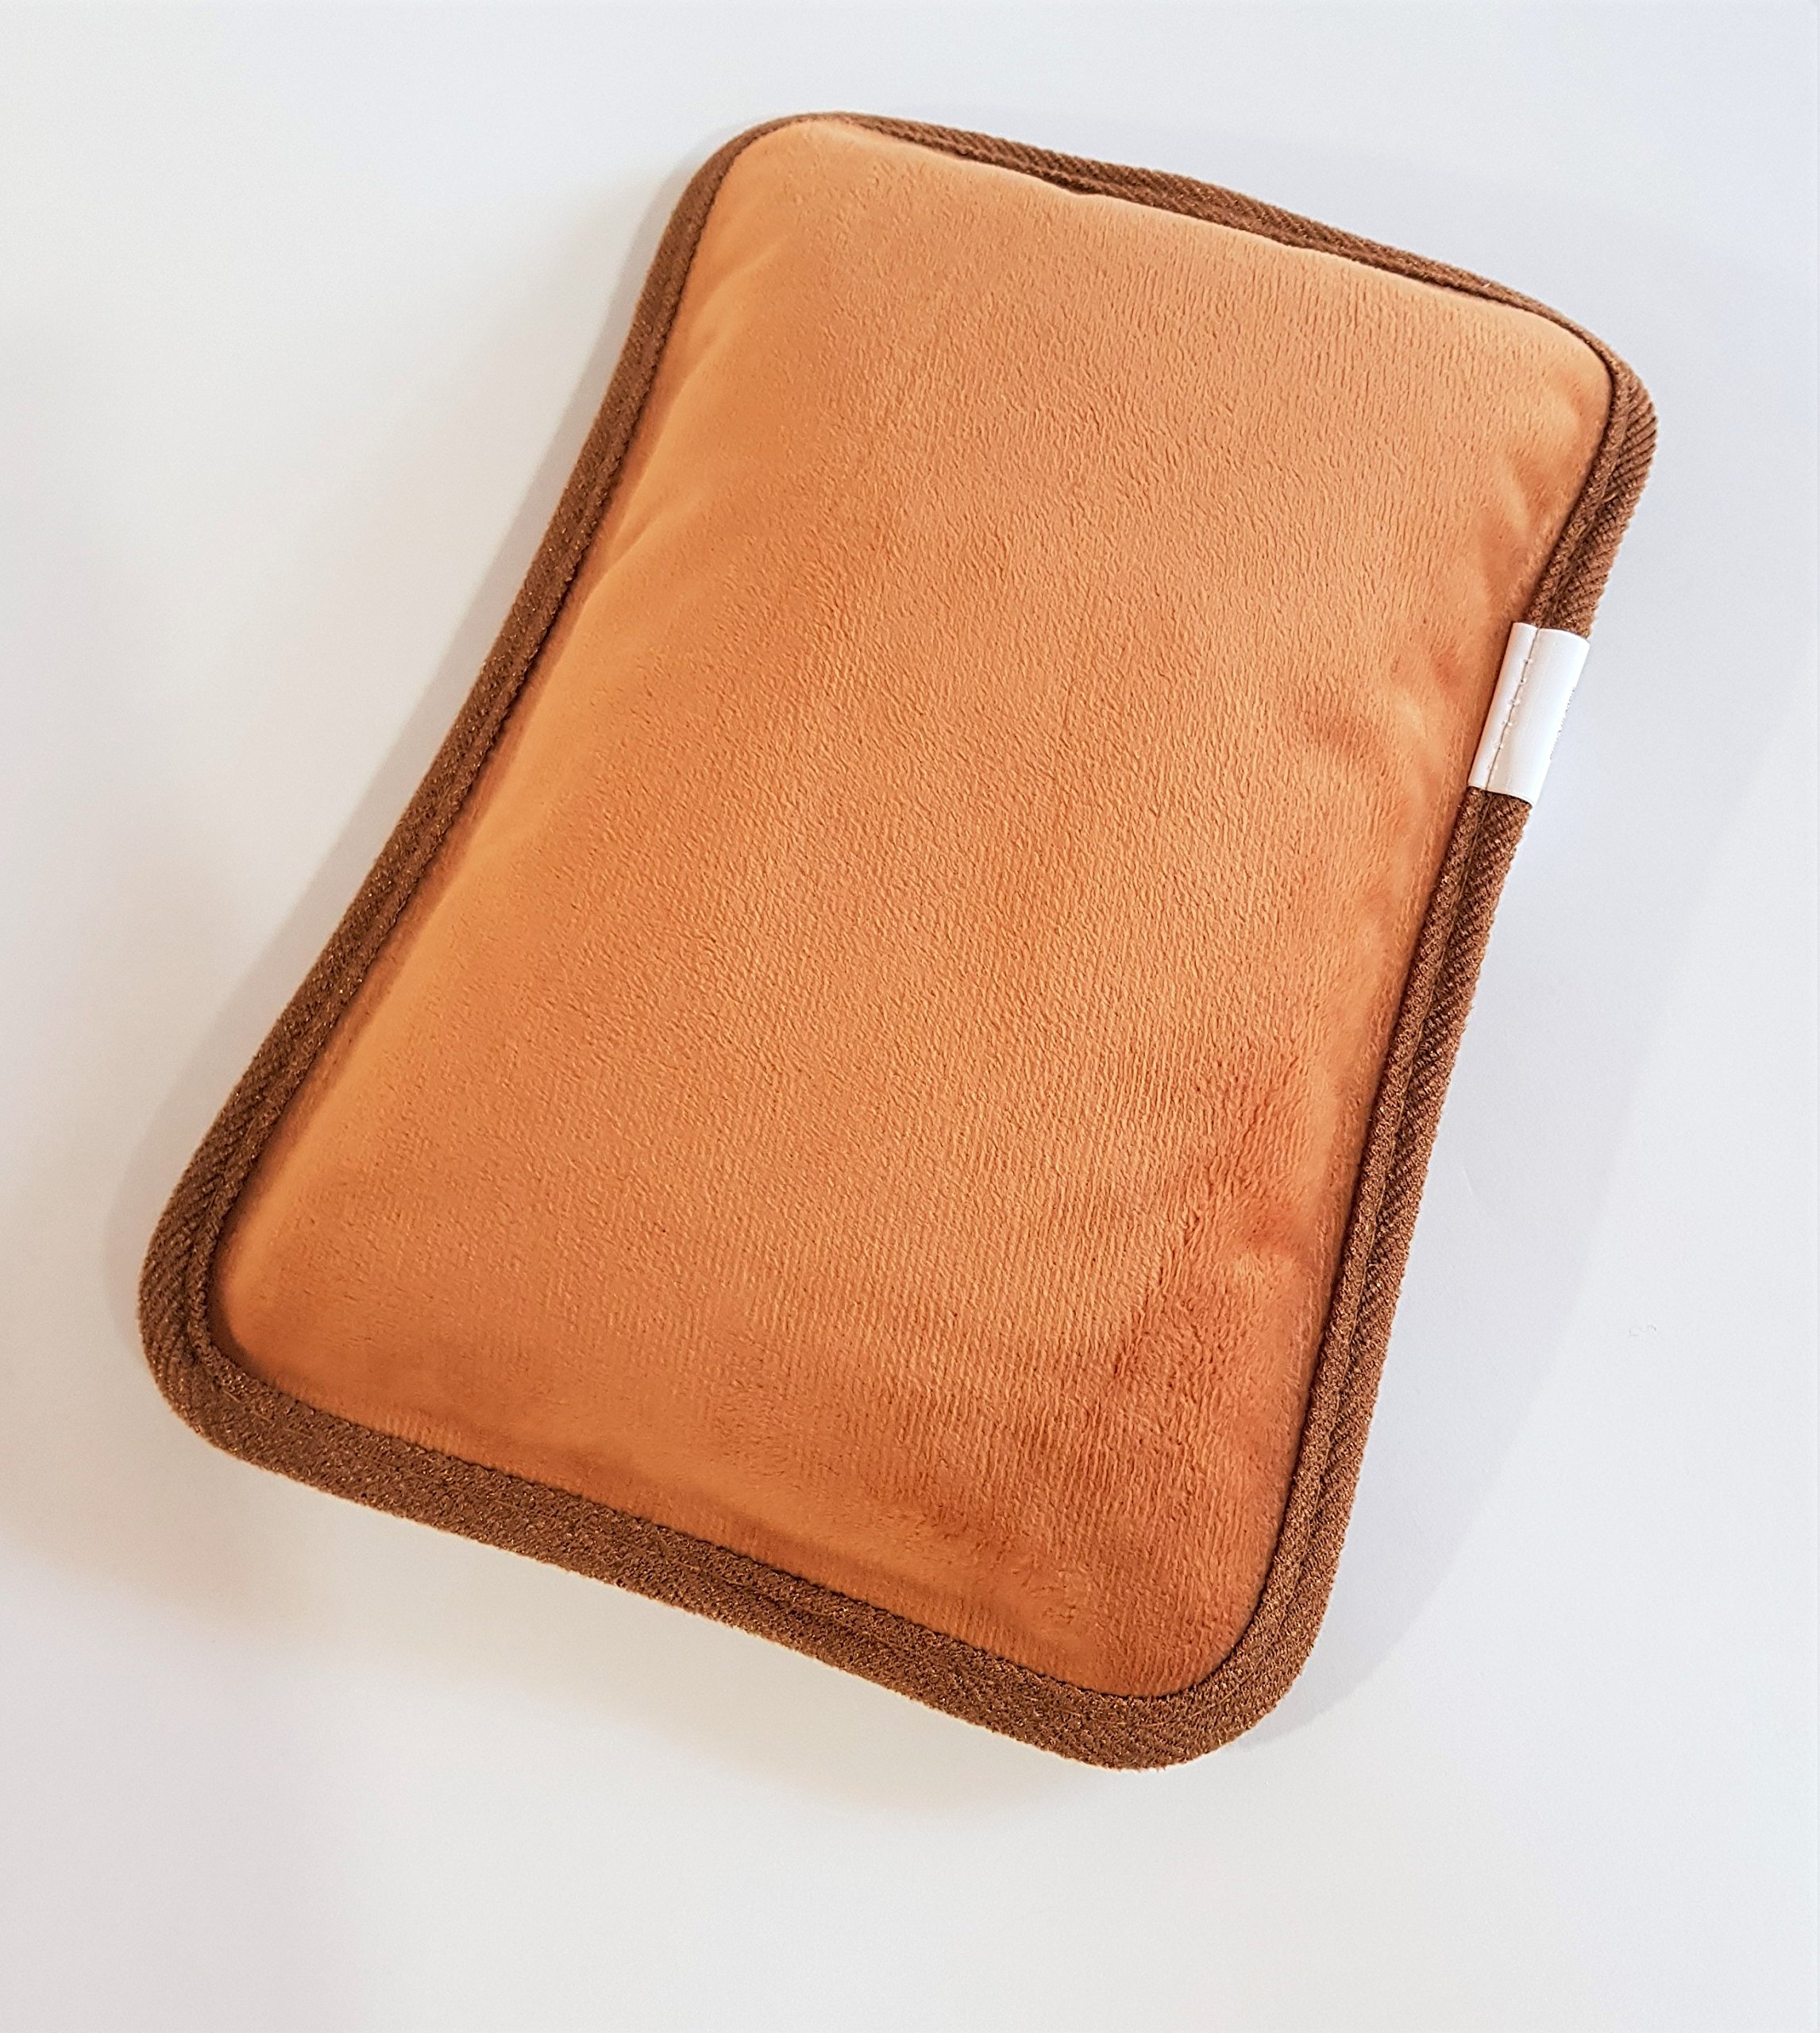 Rechargeable Portable Heat Pad/Pack Brown by Hot Shot